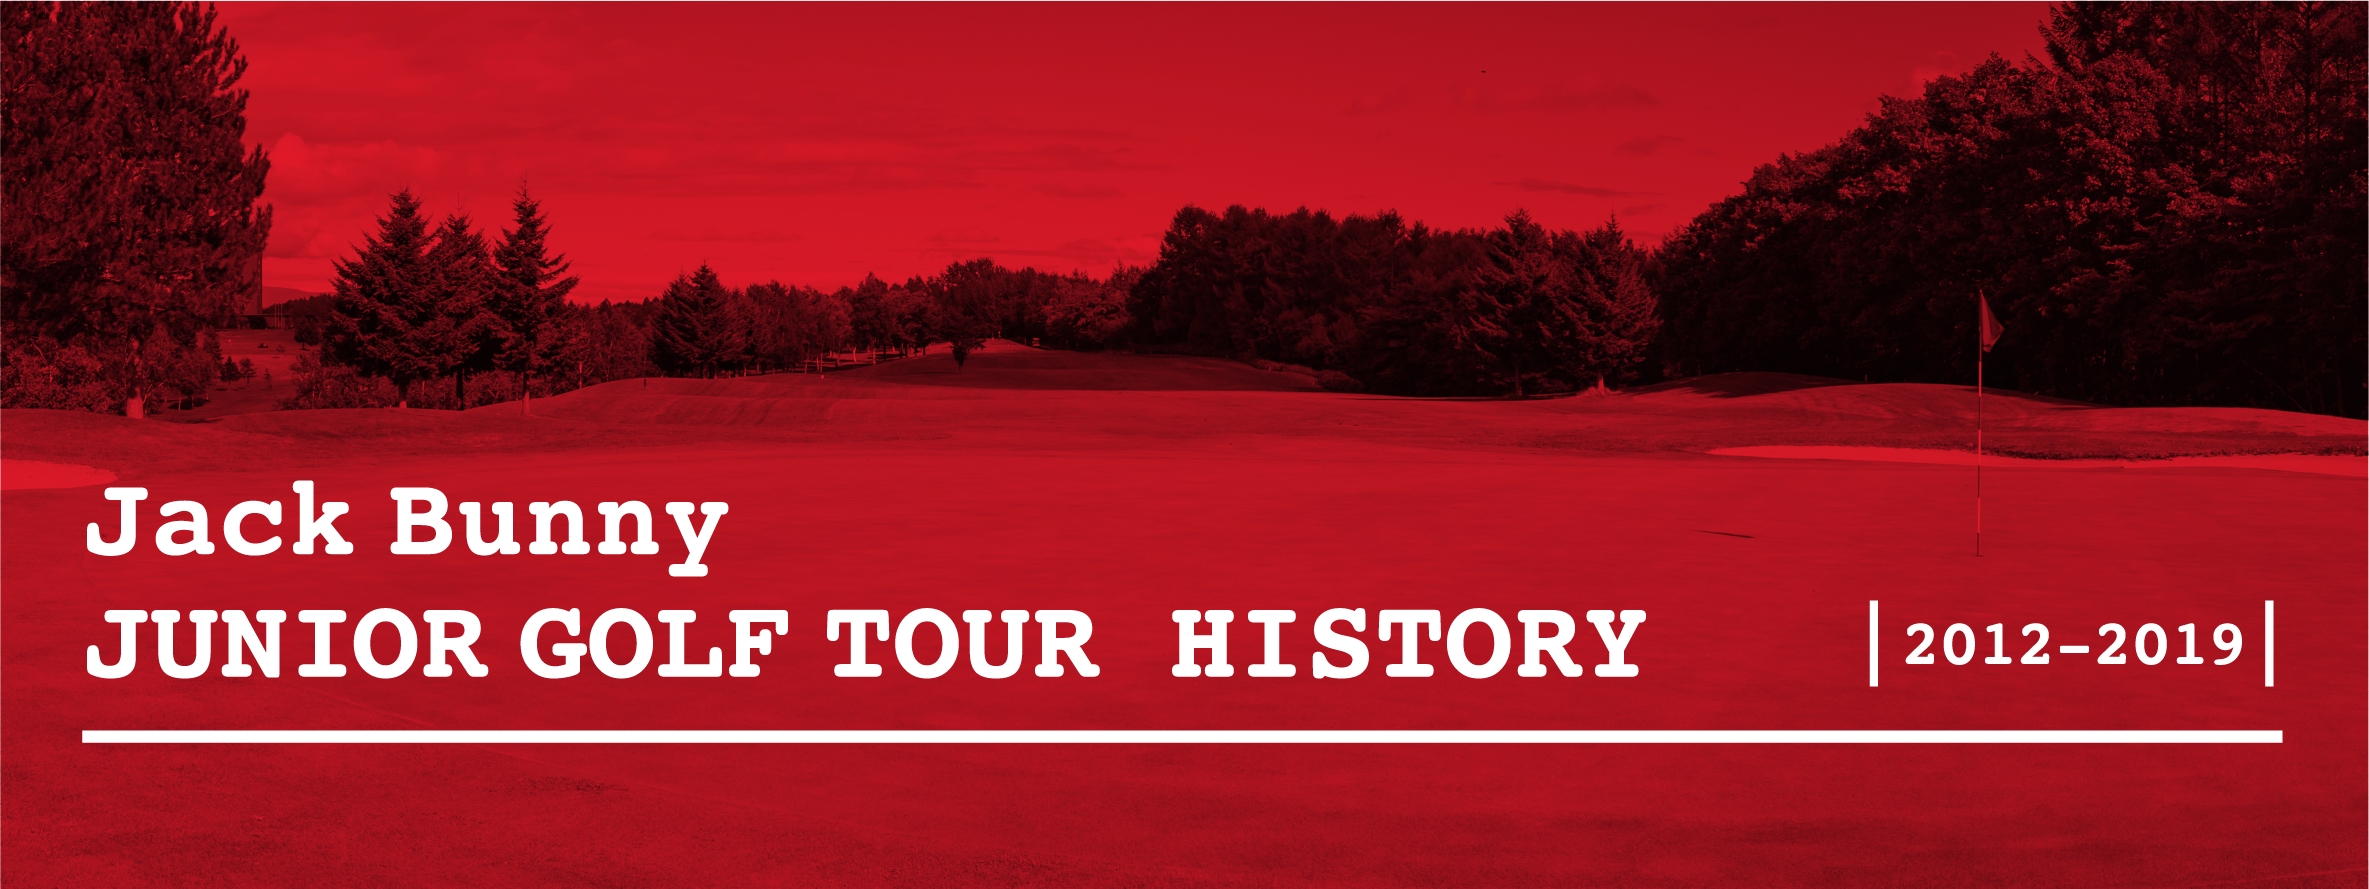 Jack Bunny JUNIOR GOLF TOUR HISTORY 2012-2019